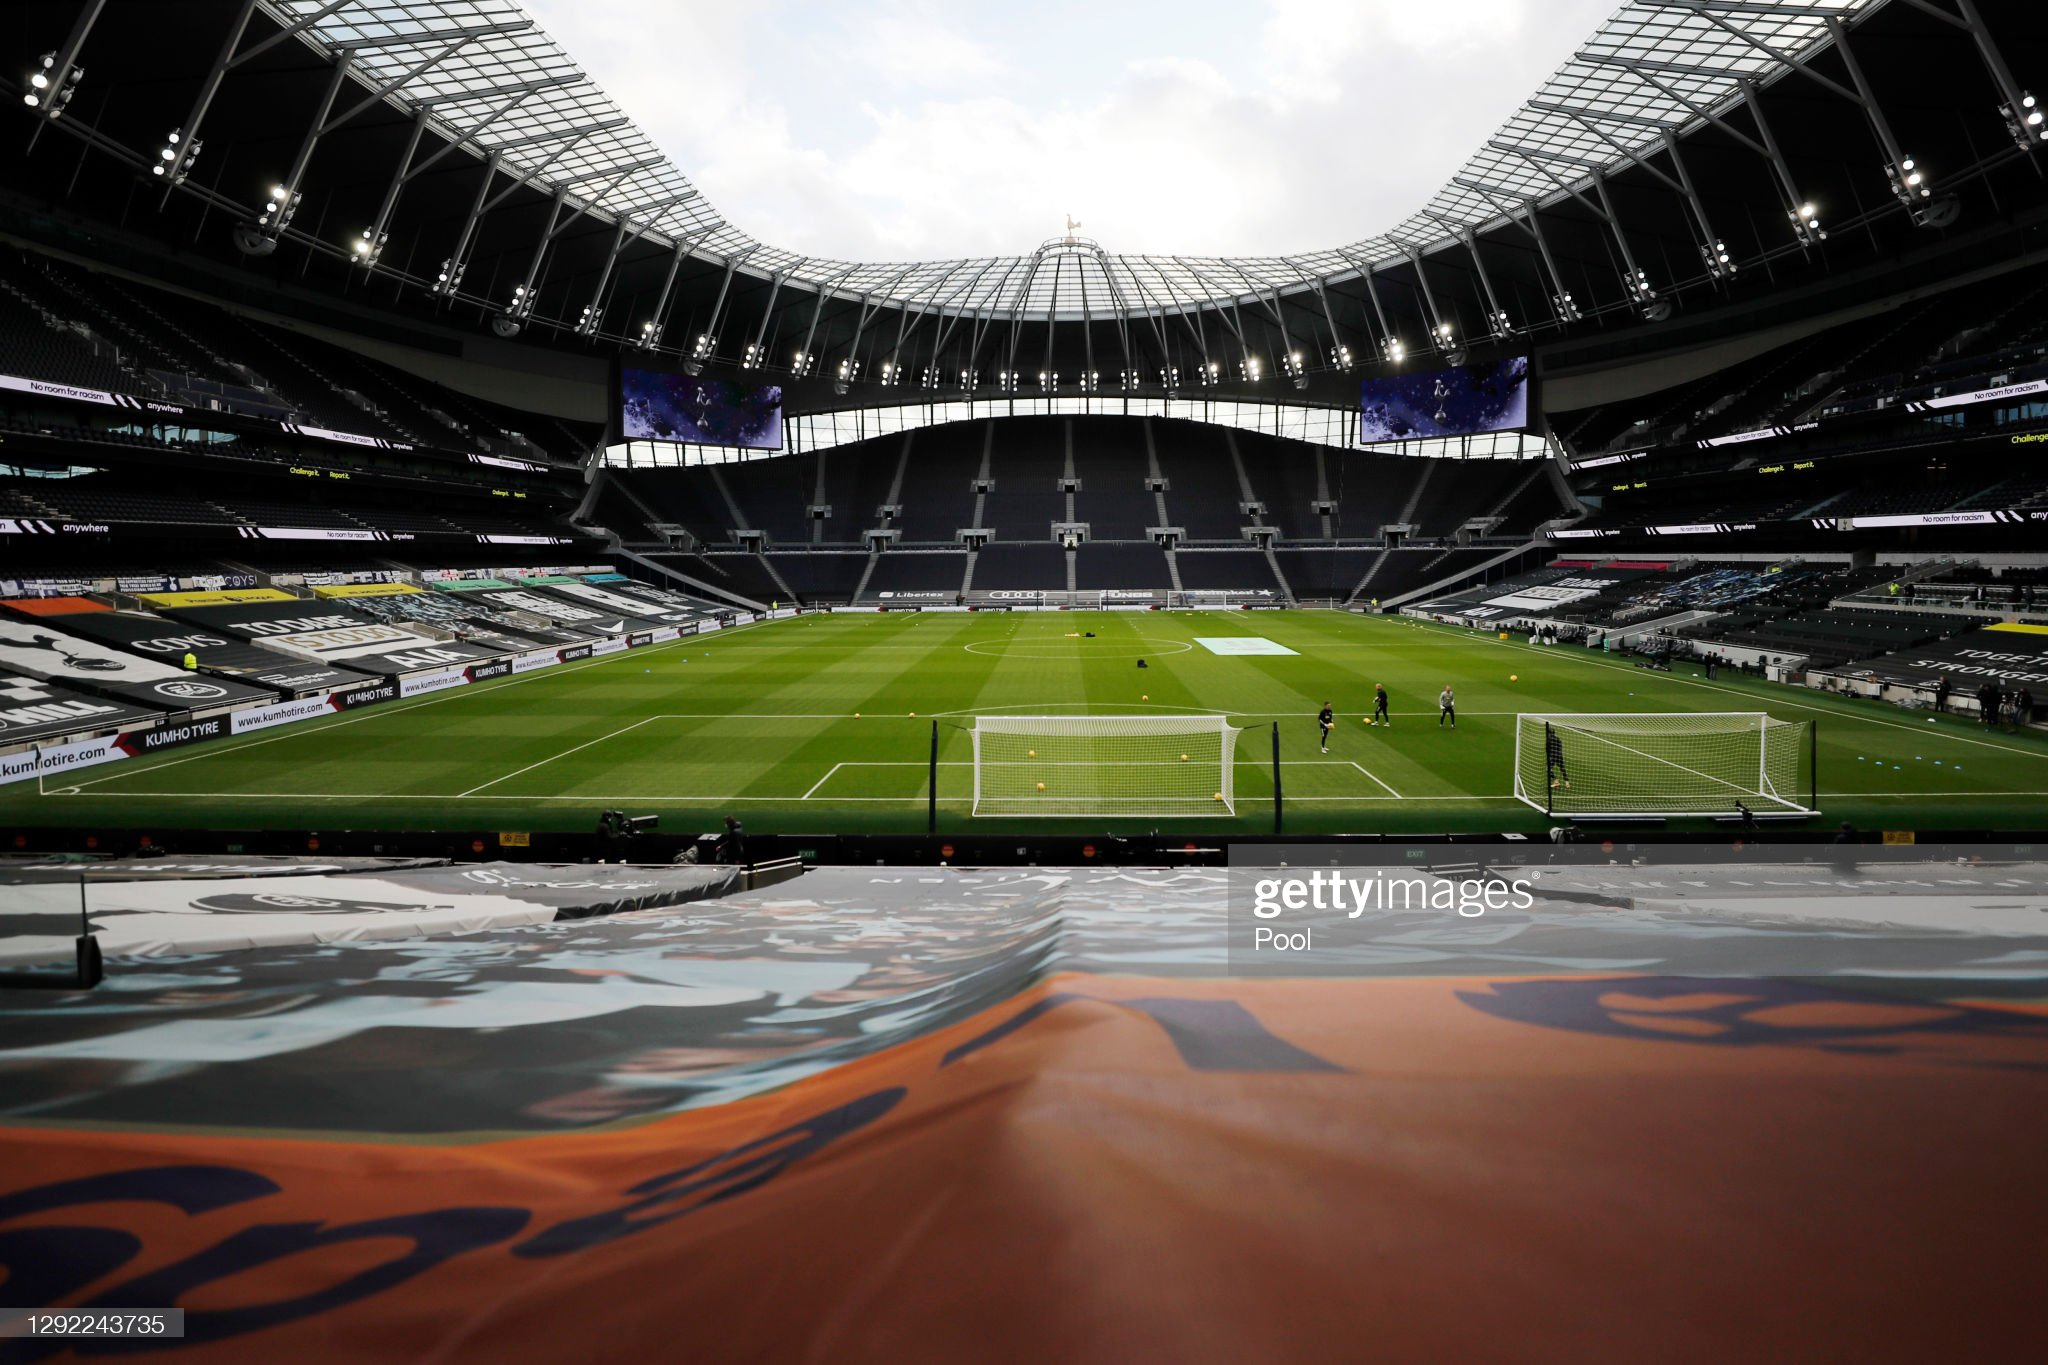 Tottenham vs Leeds United Preview, prediction and odds – Soccer Times